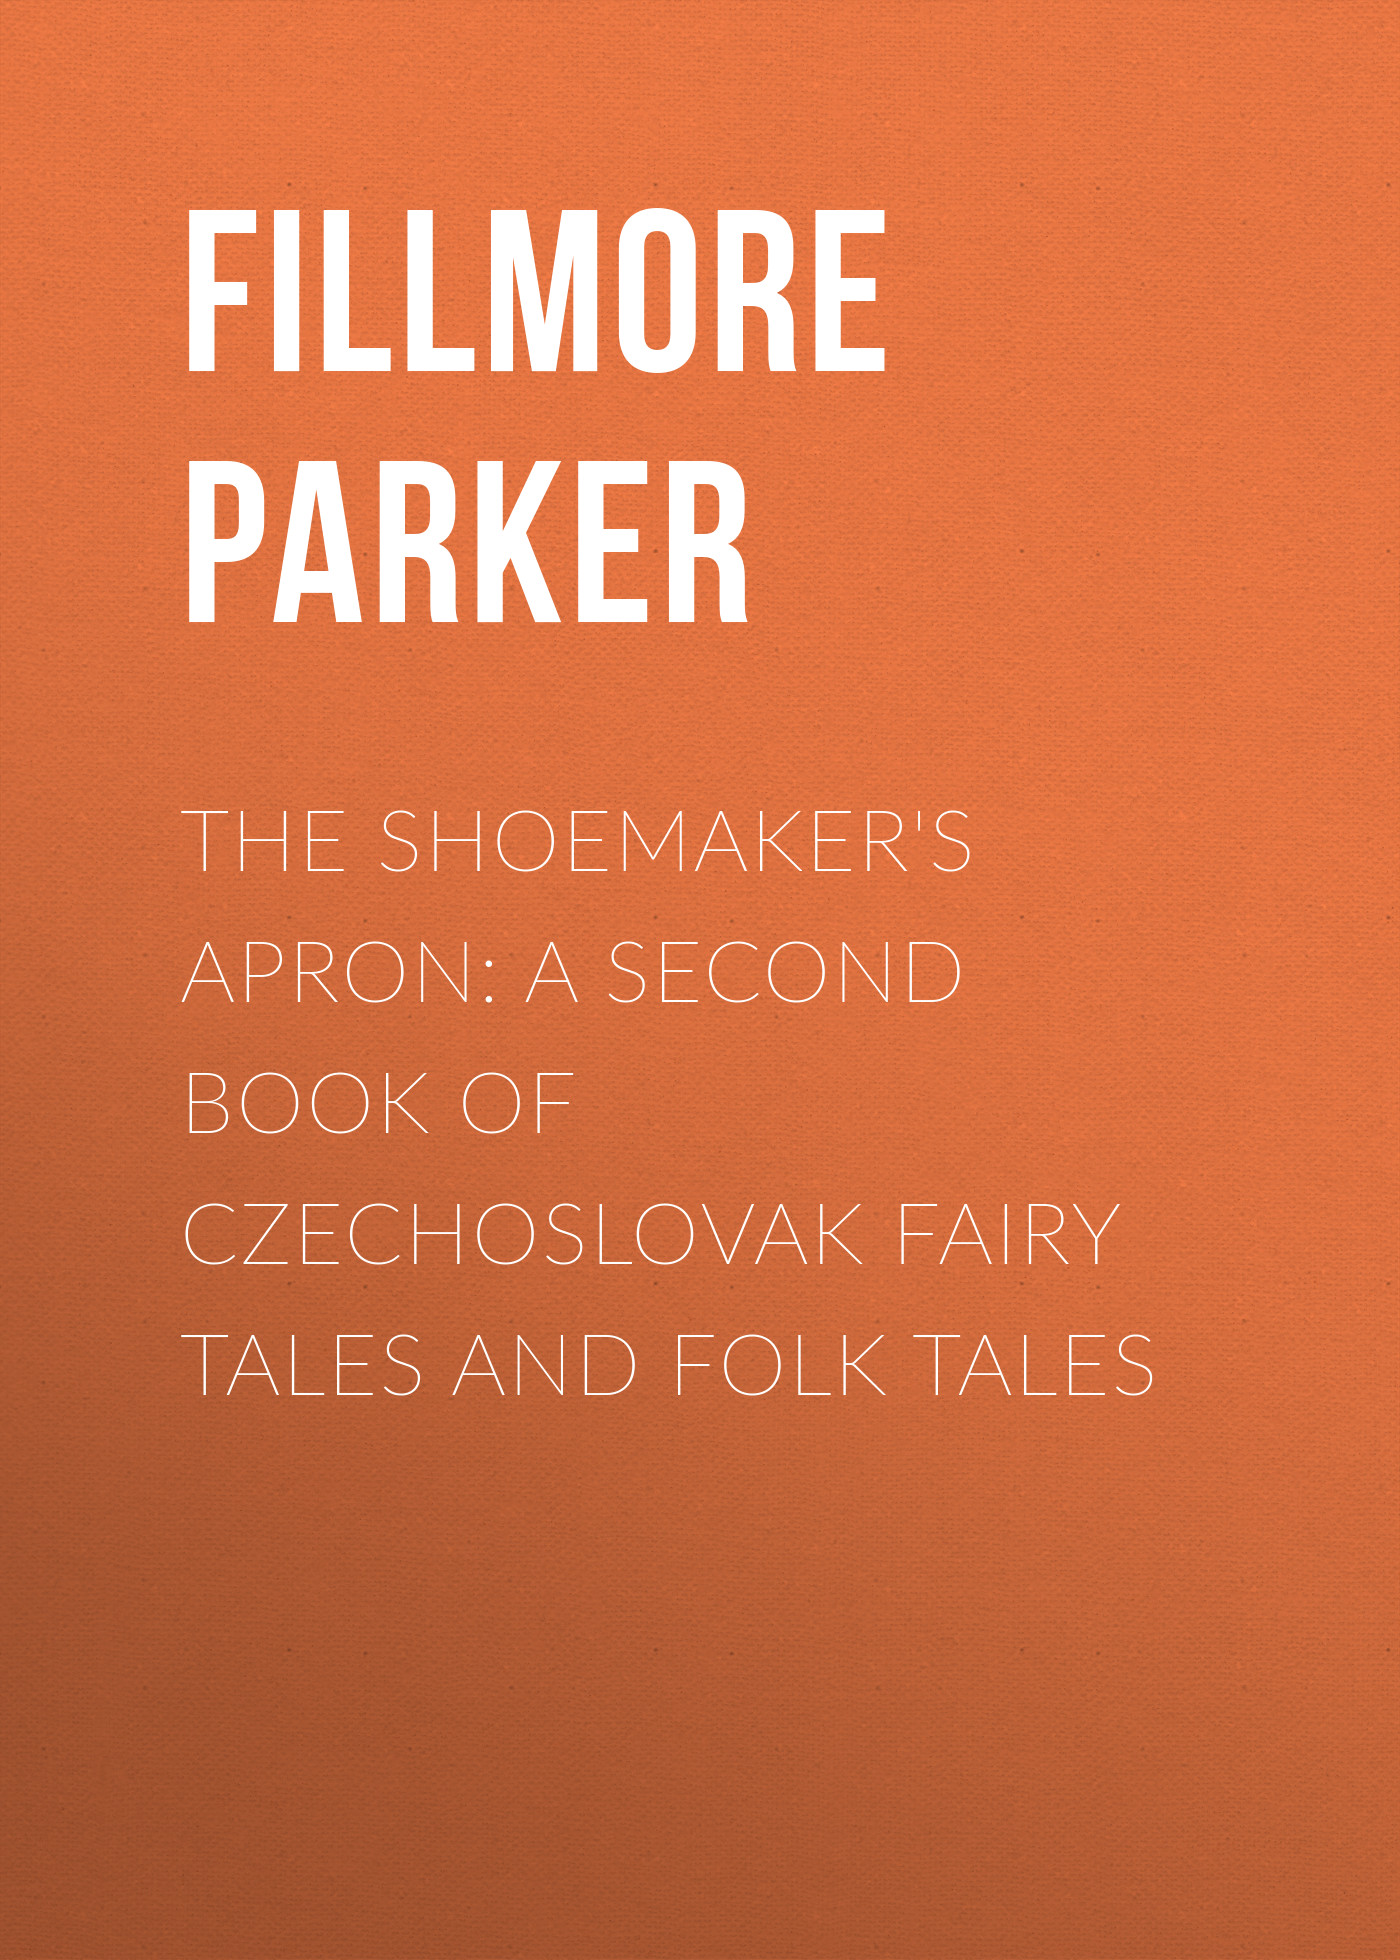 цена на Fillmore Parker The Shoemaker's Apron: A Second Book of Czechoslovak Fairy Tales and Folk Tales